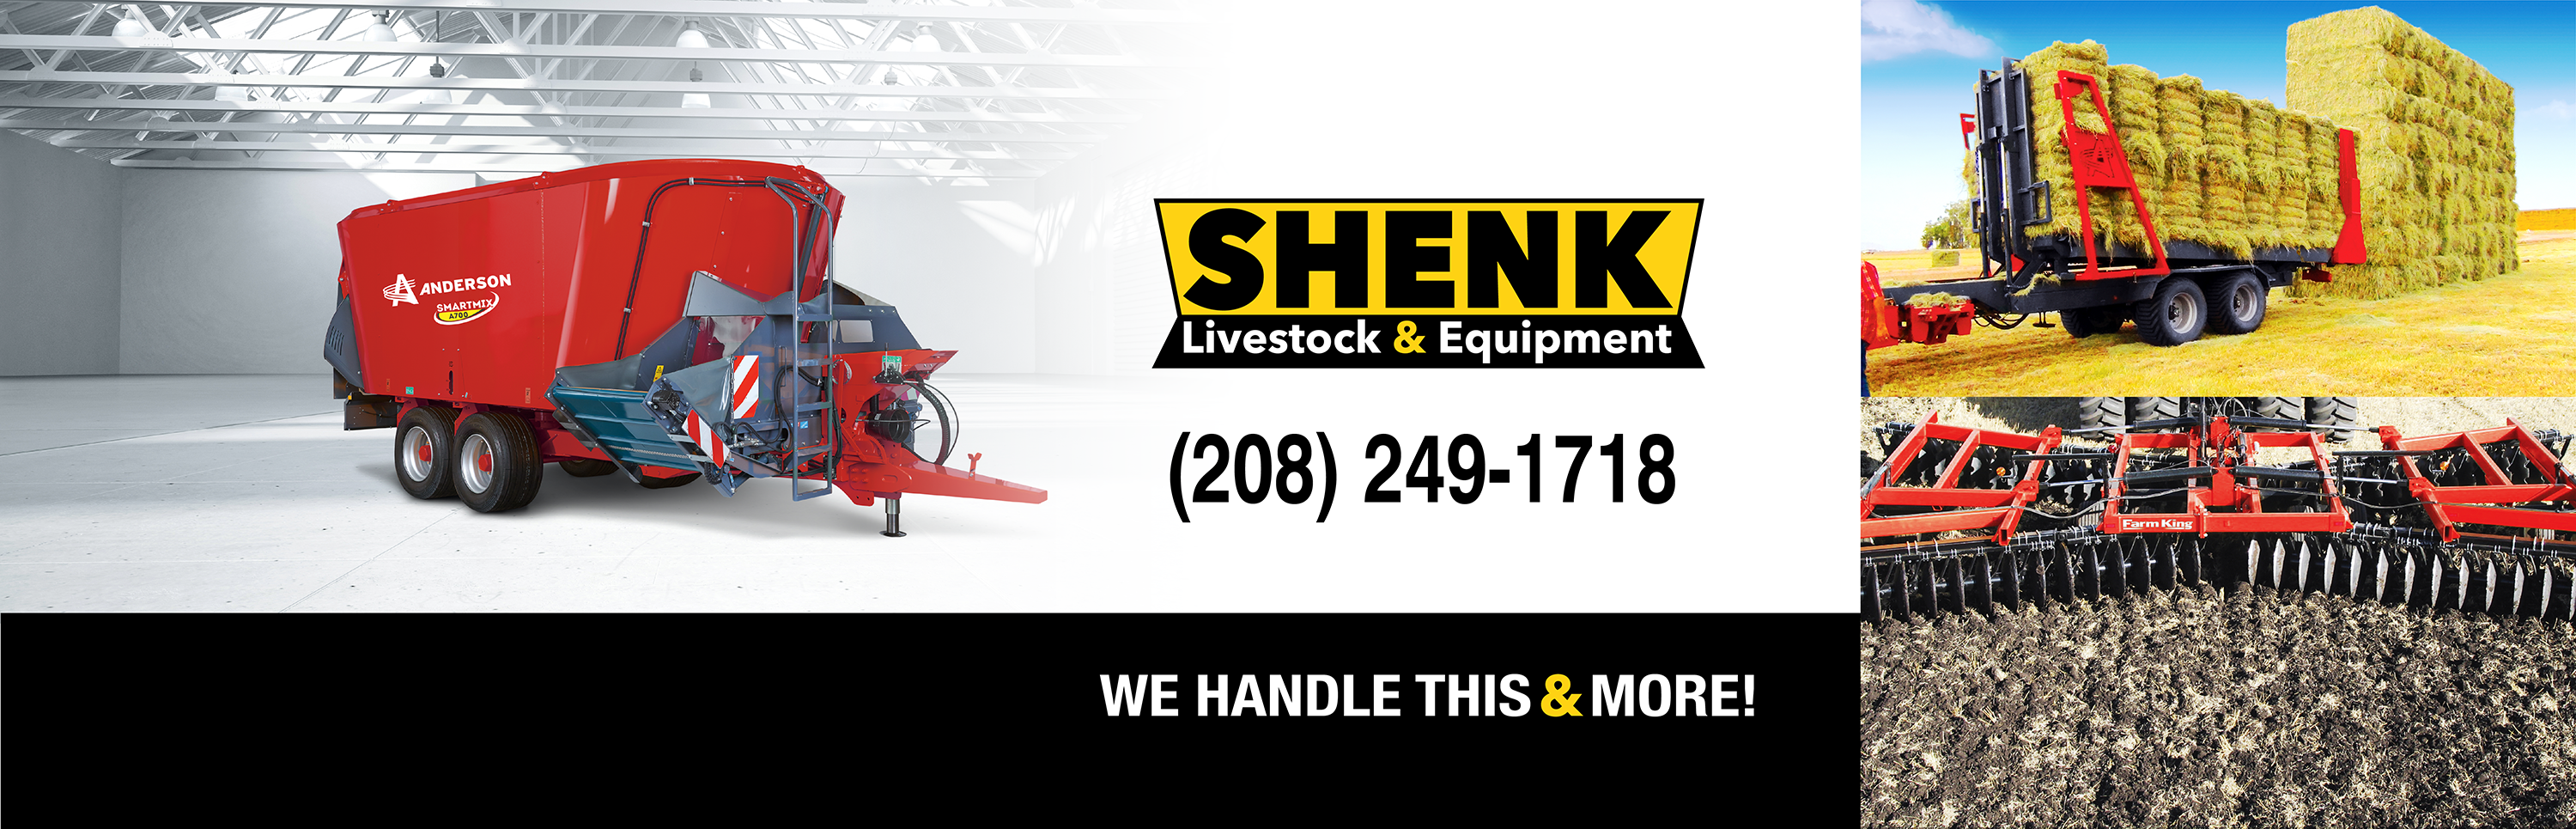 Shenk_Farm_Equipment_Billboard